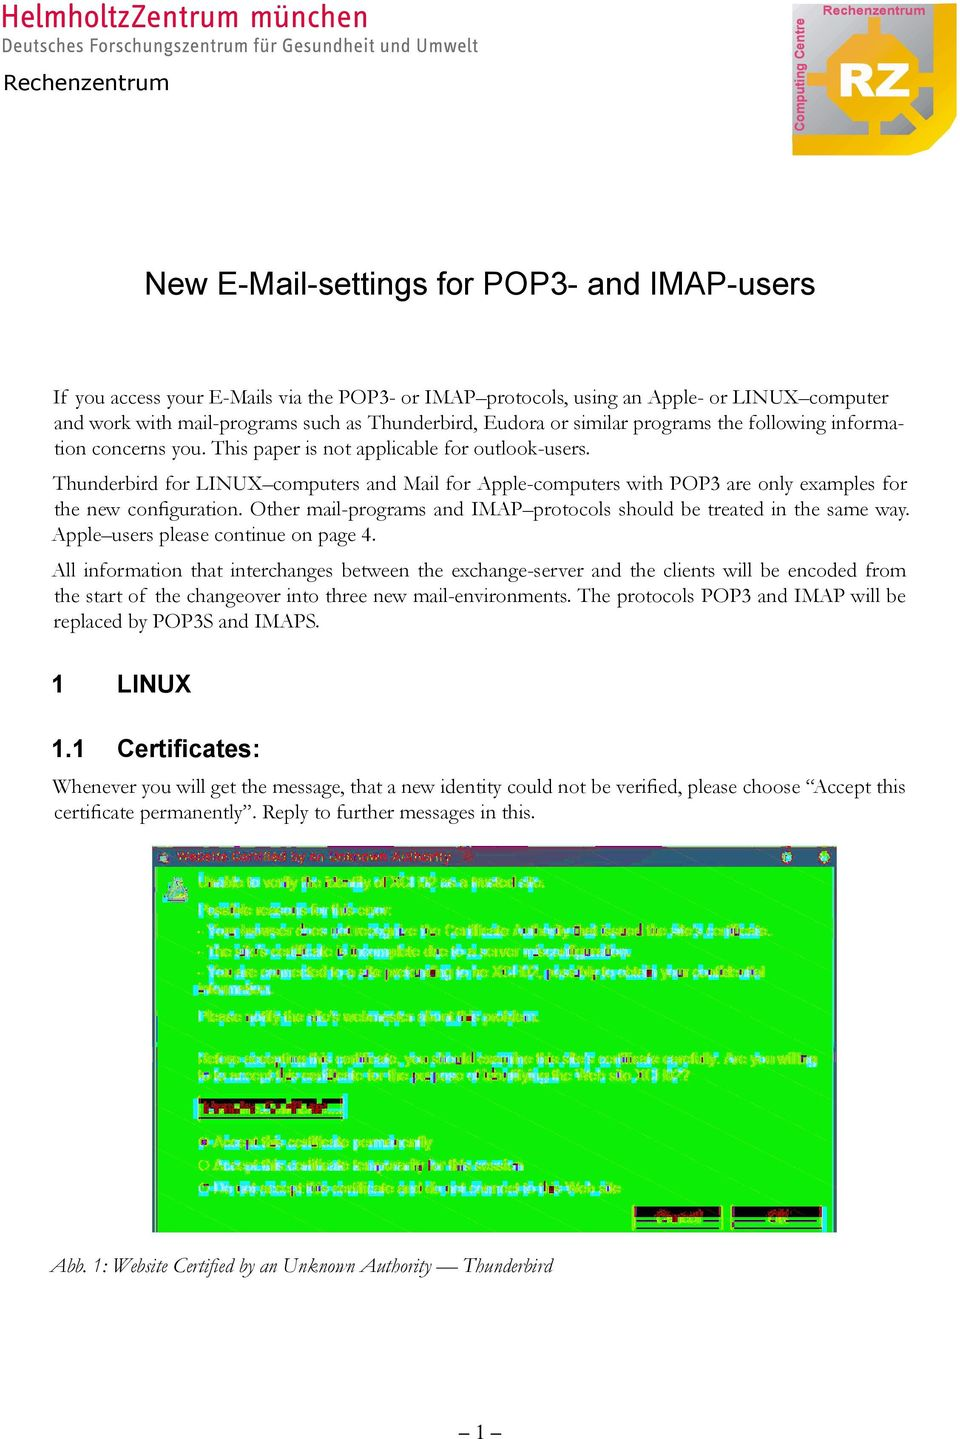 Thunderbird for LINUX computers and Mail for Apple-computers with POP3 are only examples for the new configuration. Other mail-programs and IMAP protocols should be treated in the same way.